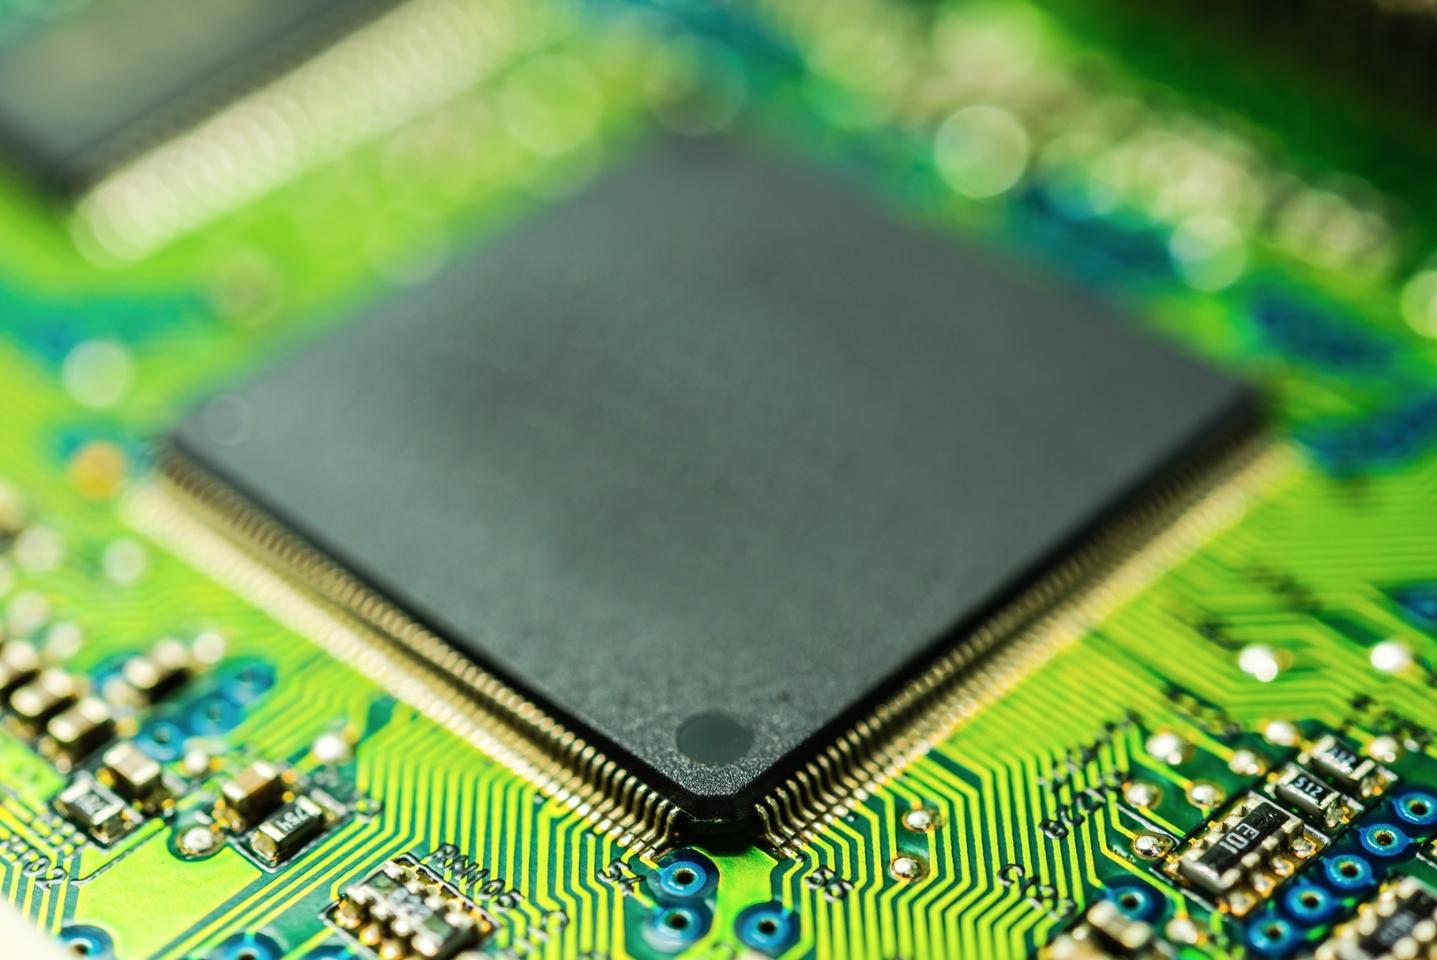 Researchers in Singapore and Germany have developed a chip that can not only process data, like the one above, but can also act as memory storage